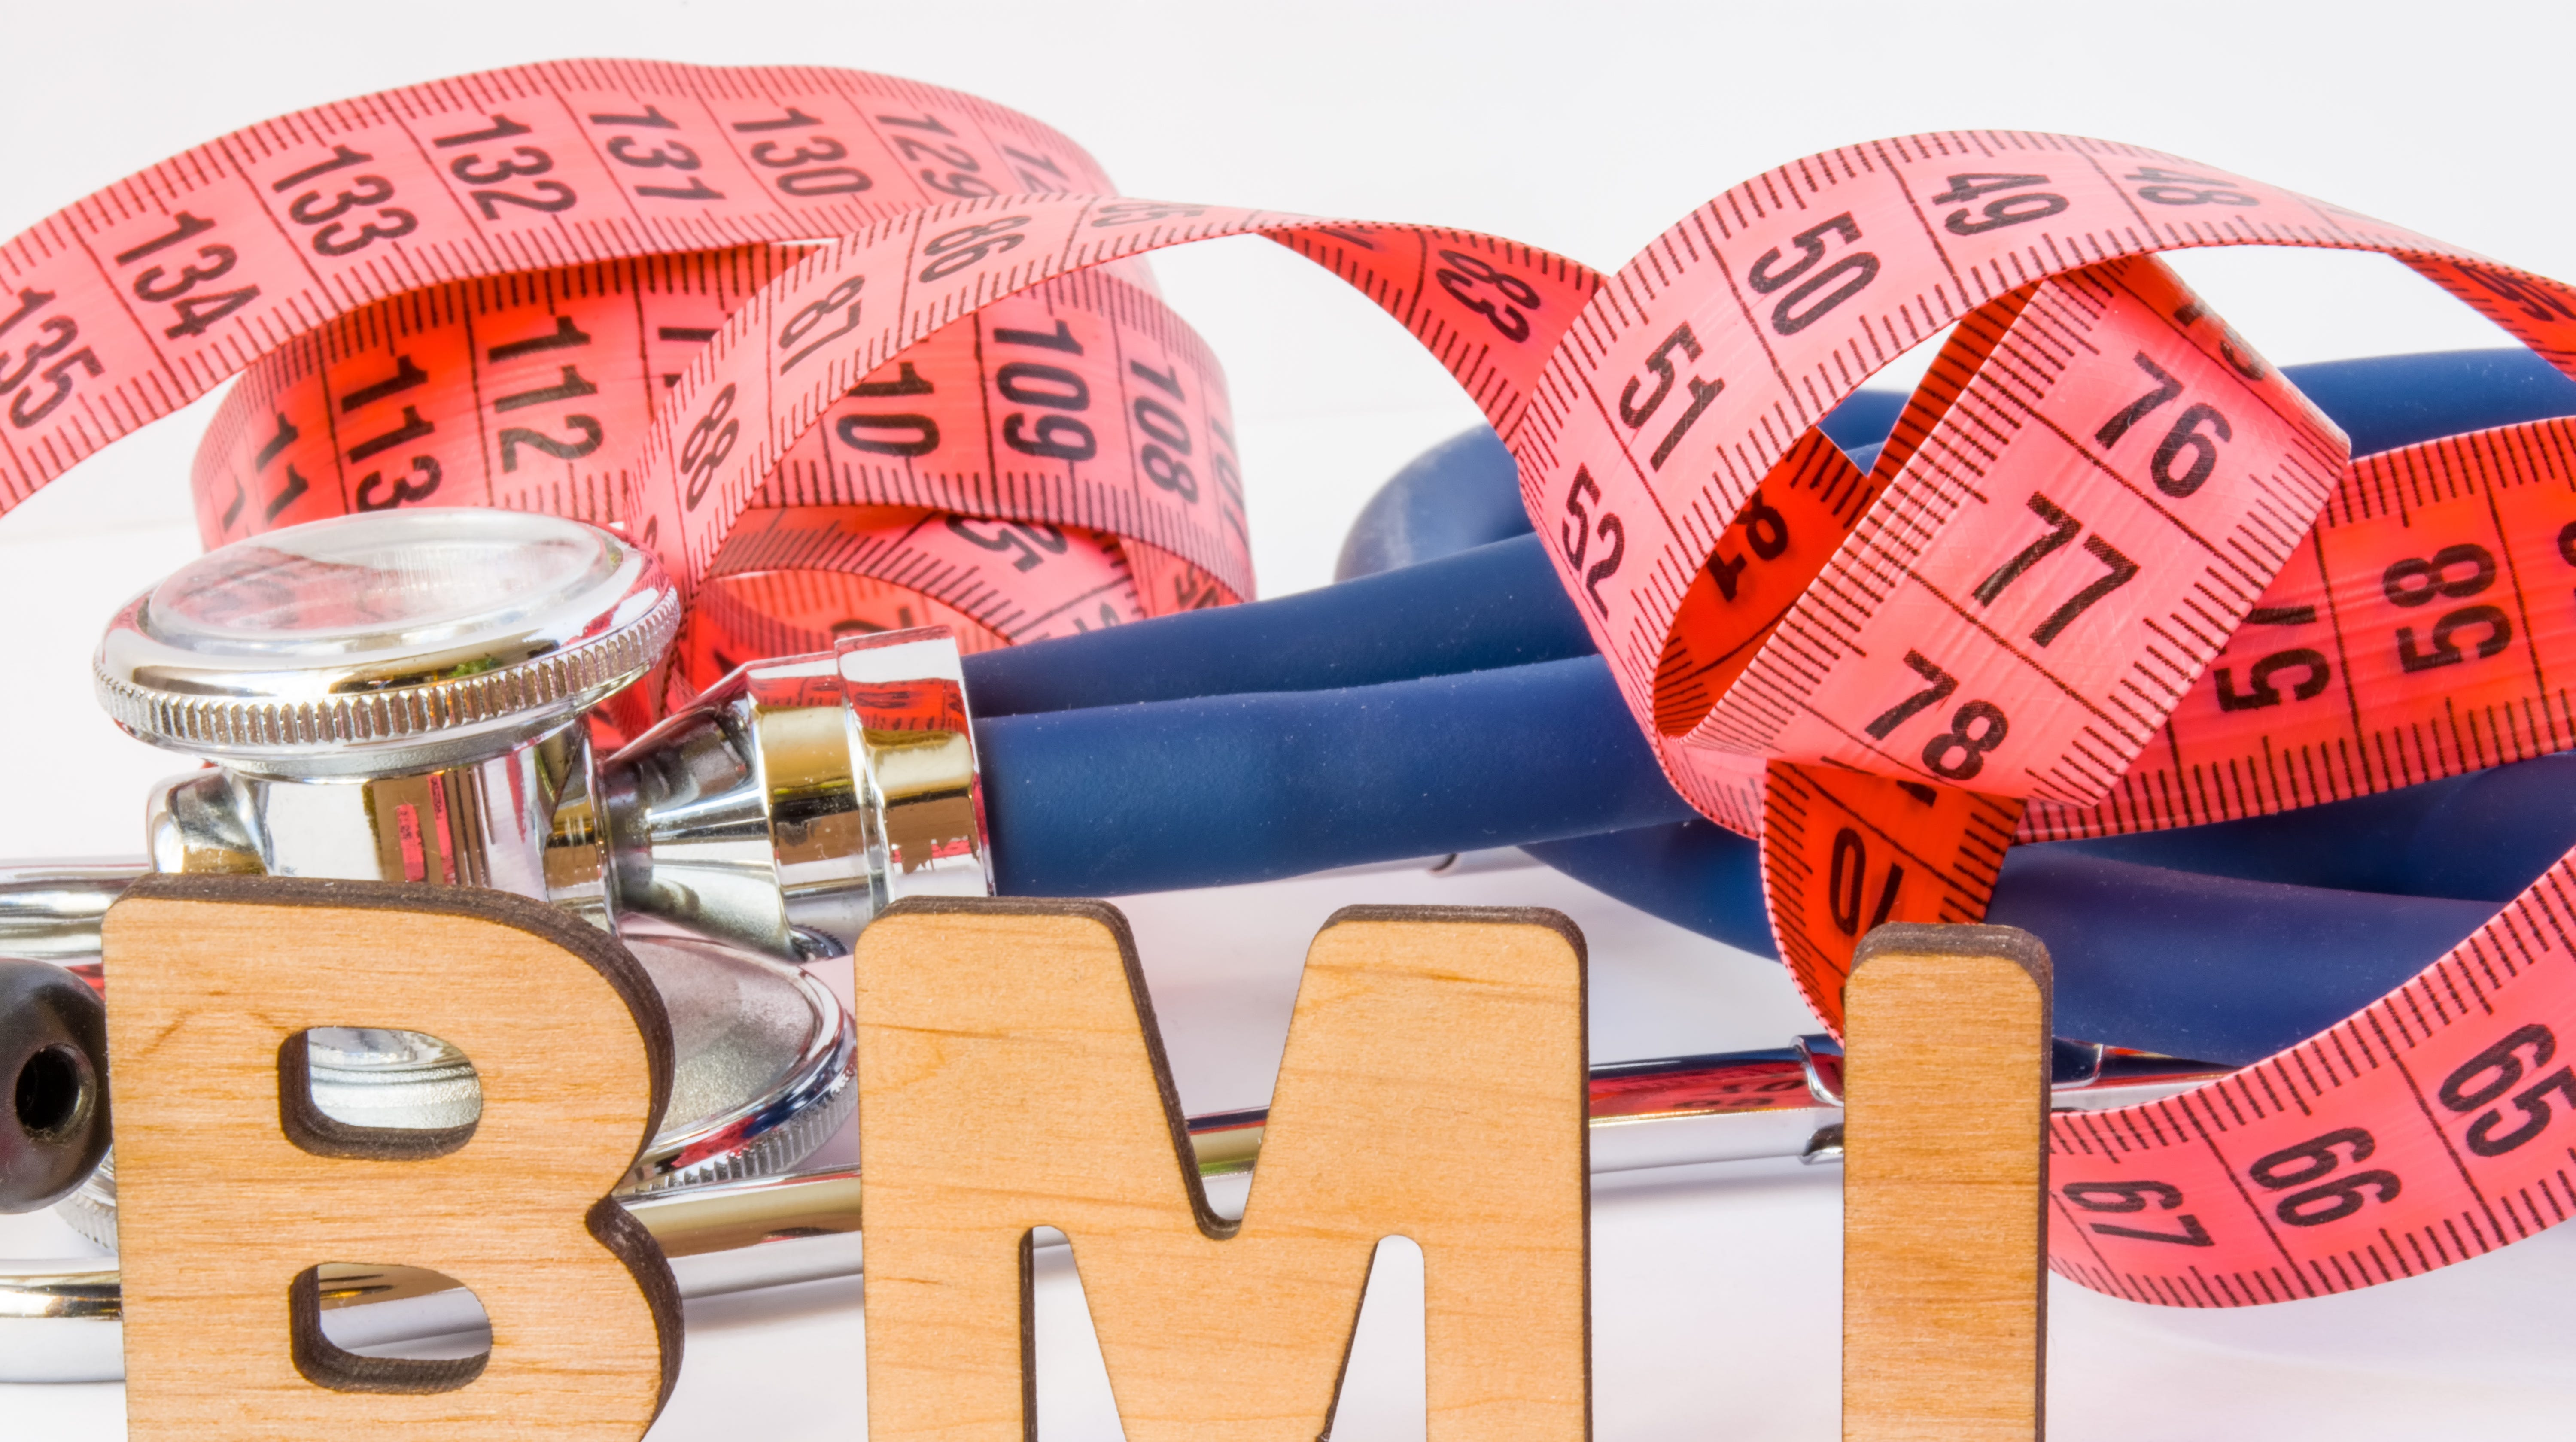 Bariatric surgery may help patients who are severely obese and have unsuccessfully tried other weight loss methods without any long-term success.